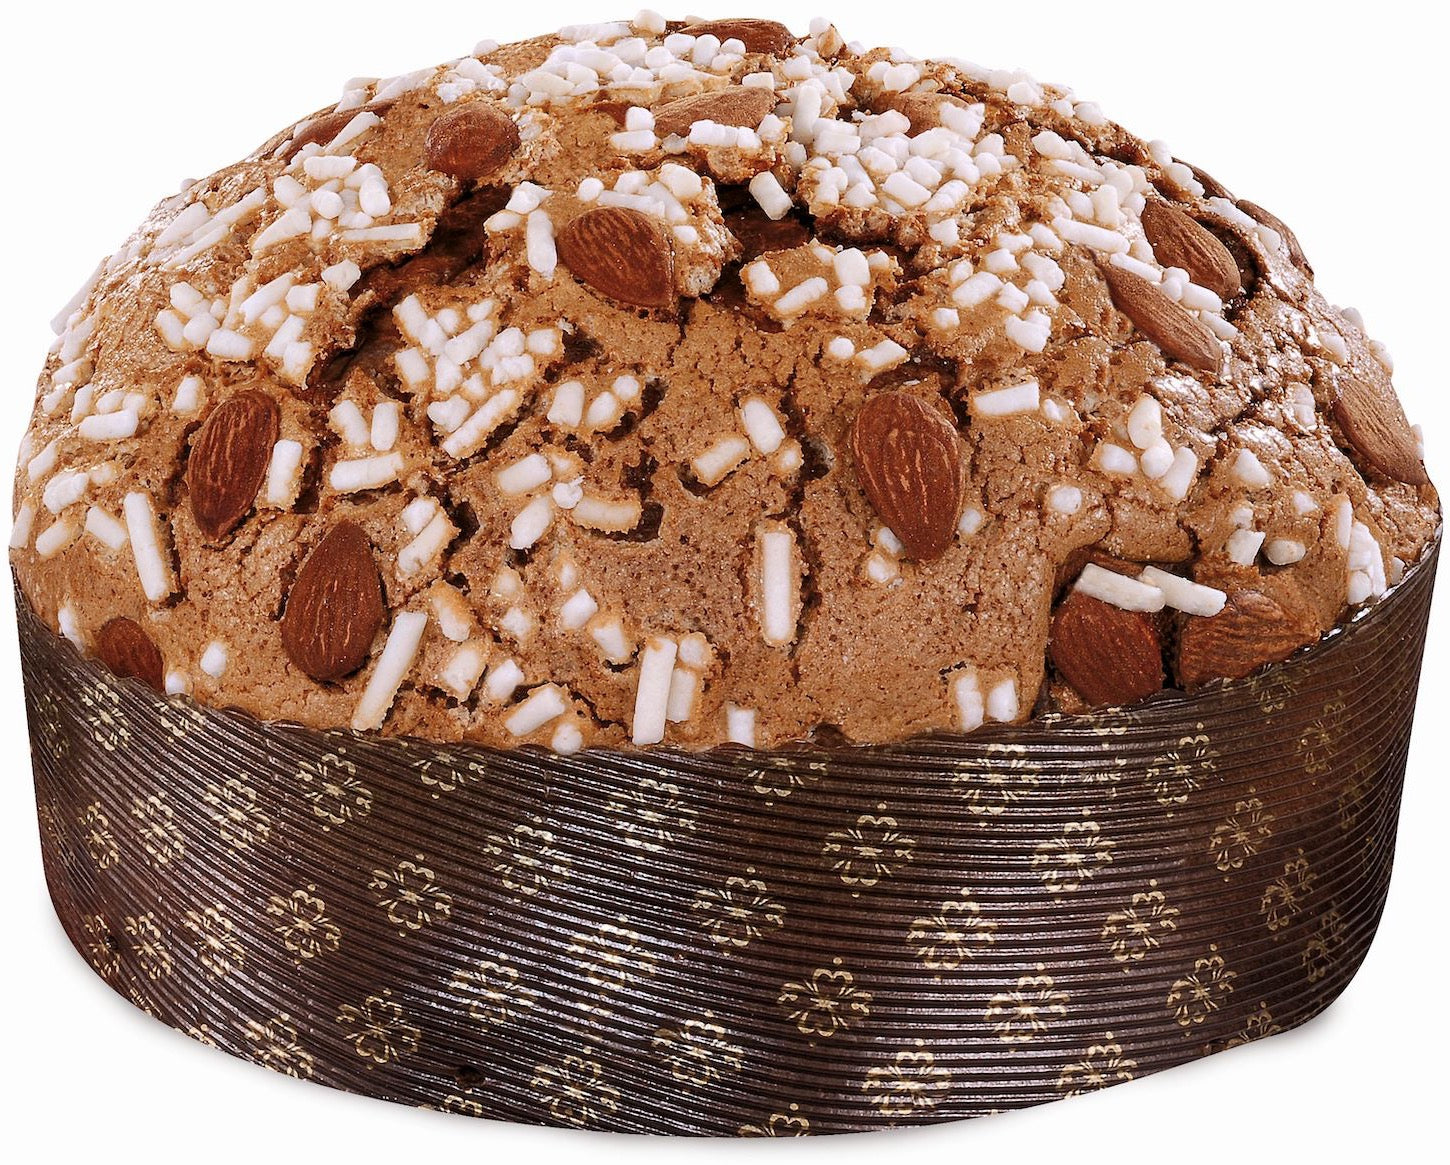 NEW Dolce & Gabbana Sicilian Almond Panettone made by Fiasconaro 1KG